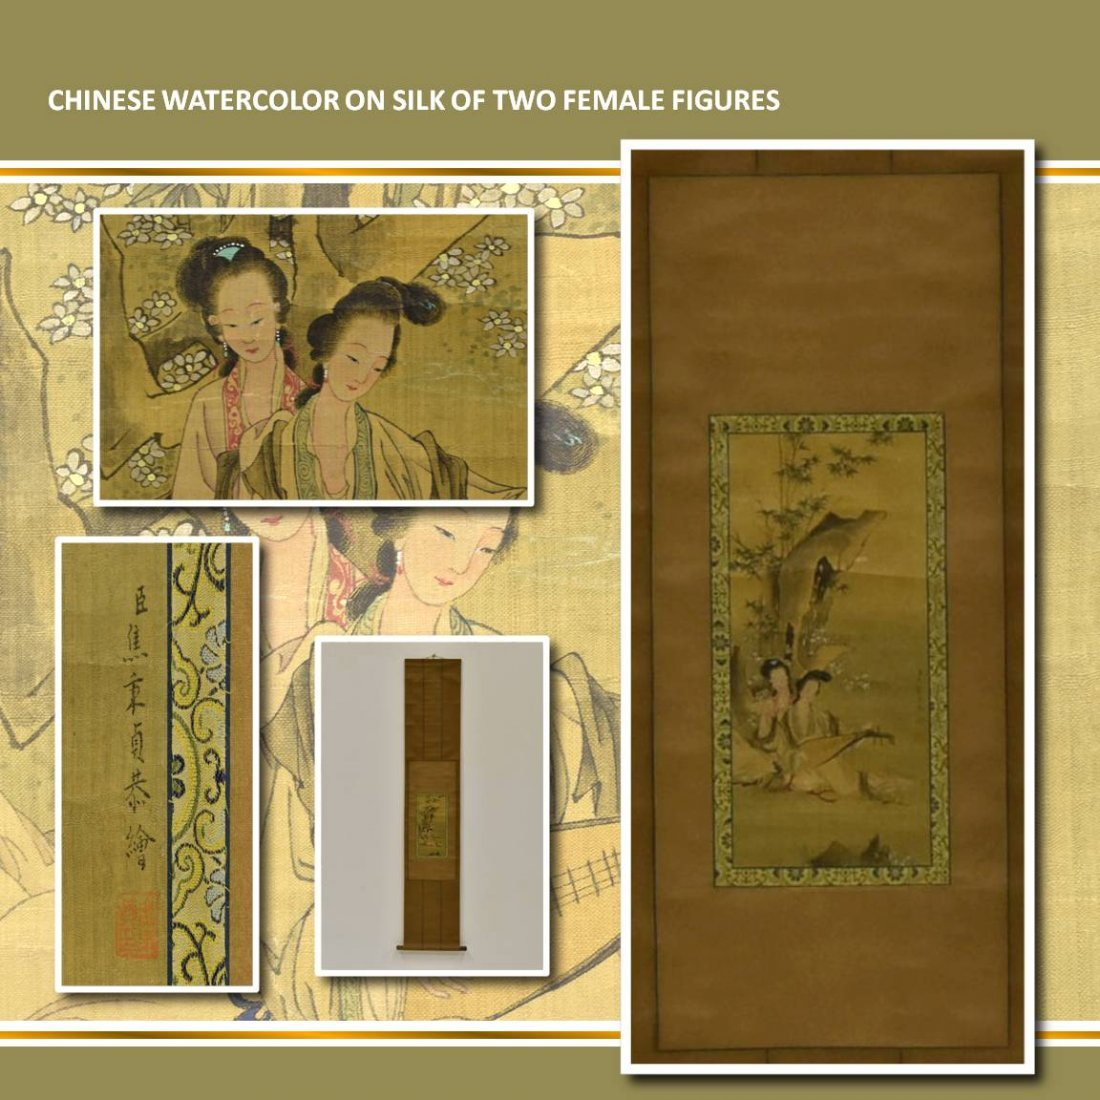 CHINESE WATERCOLOR ON SILK OF TWO FEMALE FIGURES